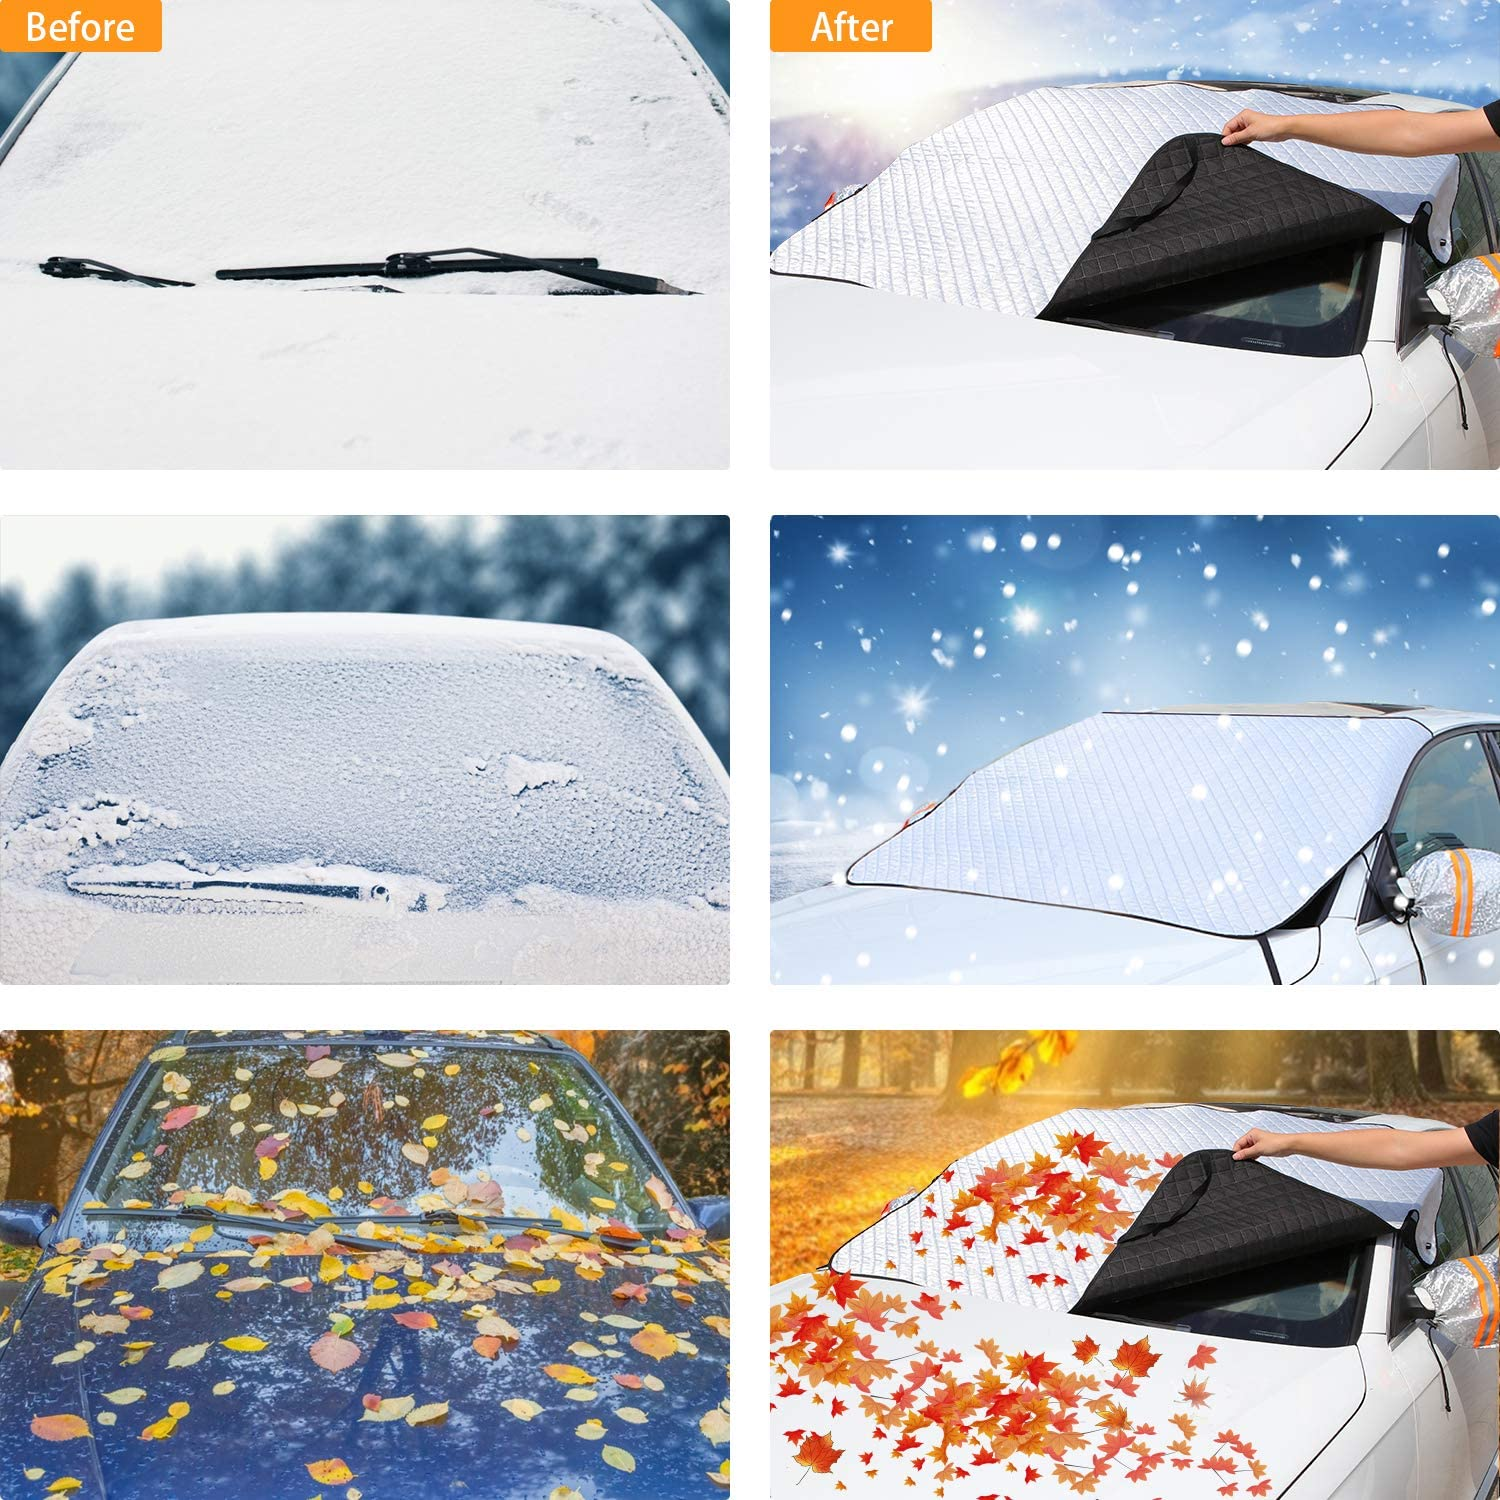 SUVs Trucks Windshield Cover Set for Ice and Snow for Car with 4 Magnets and 4 Layer Protection Waterproof,Snow,Ice,Frost Defense,Windproof Upgraded Car Windshield Snow Cover Fits Most Cars